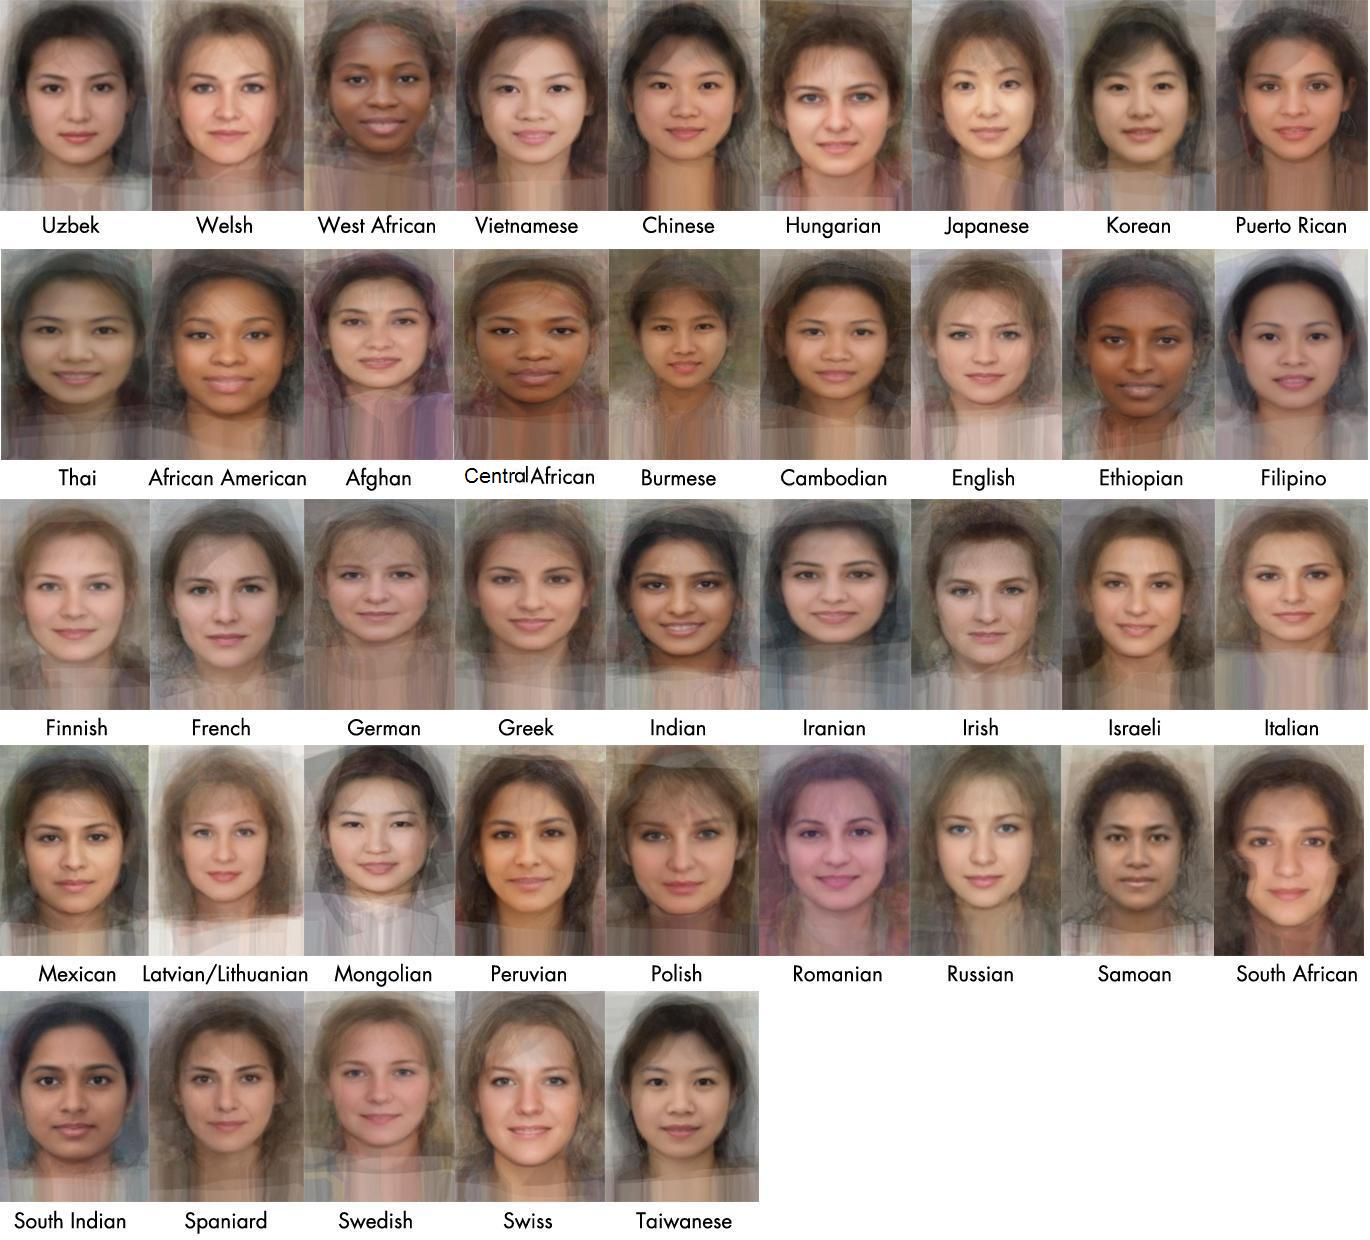 ... face of women across the world (click and click again to enlarge